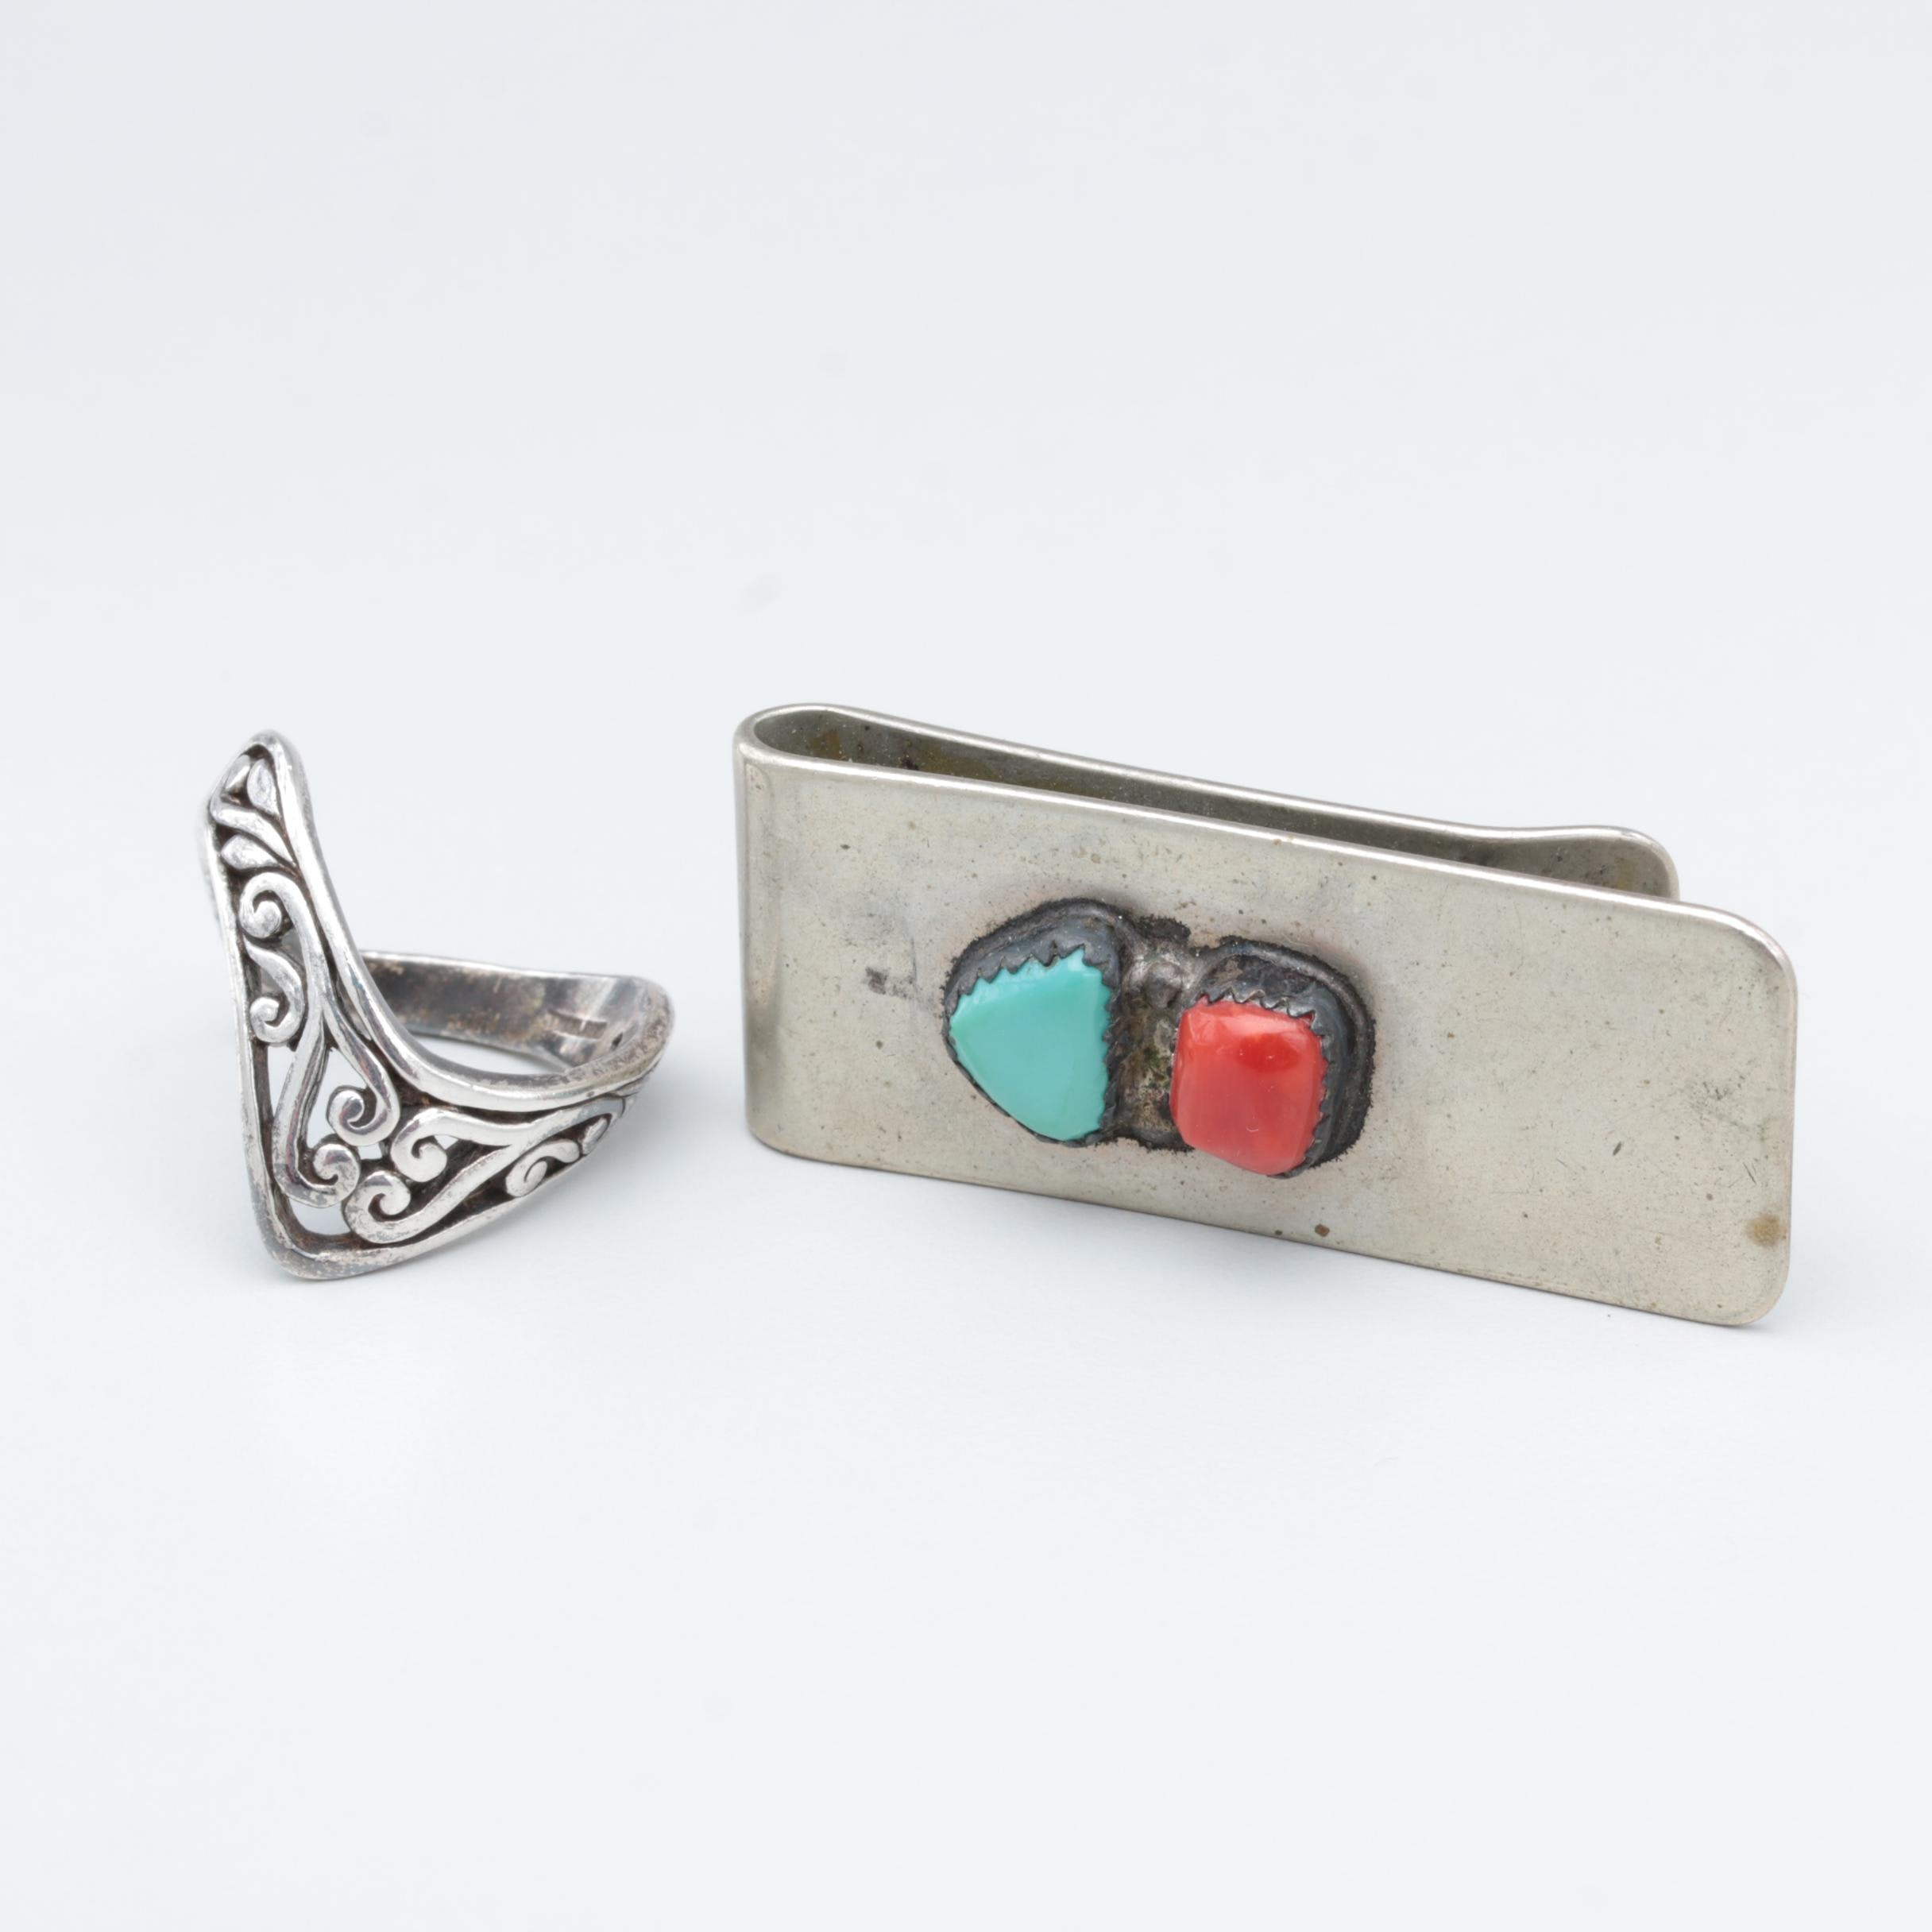 Sterling Silver Ring, Silver Tone Money Clip with Turquoise and Coral